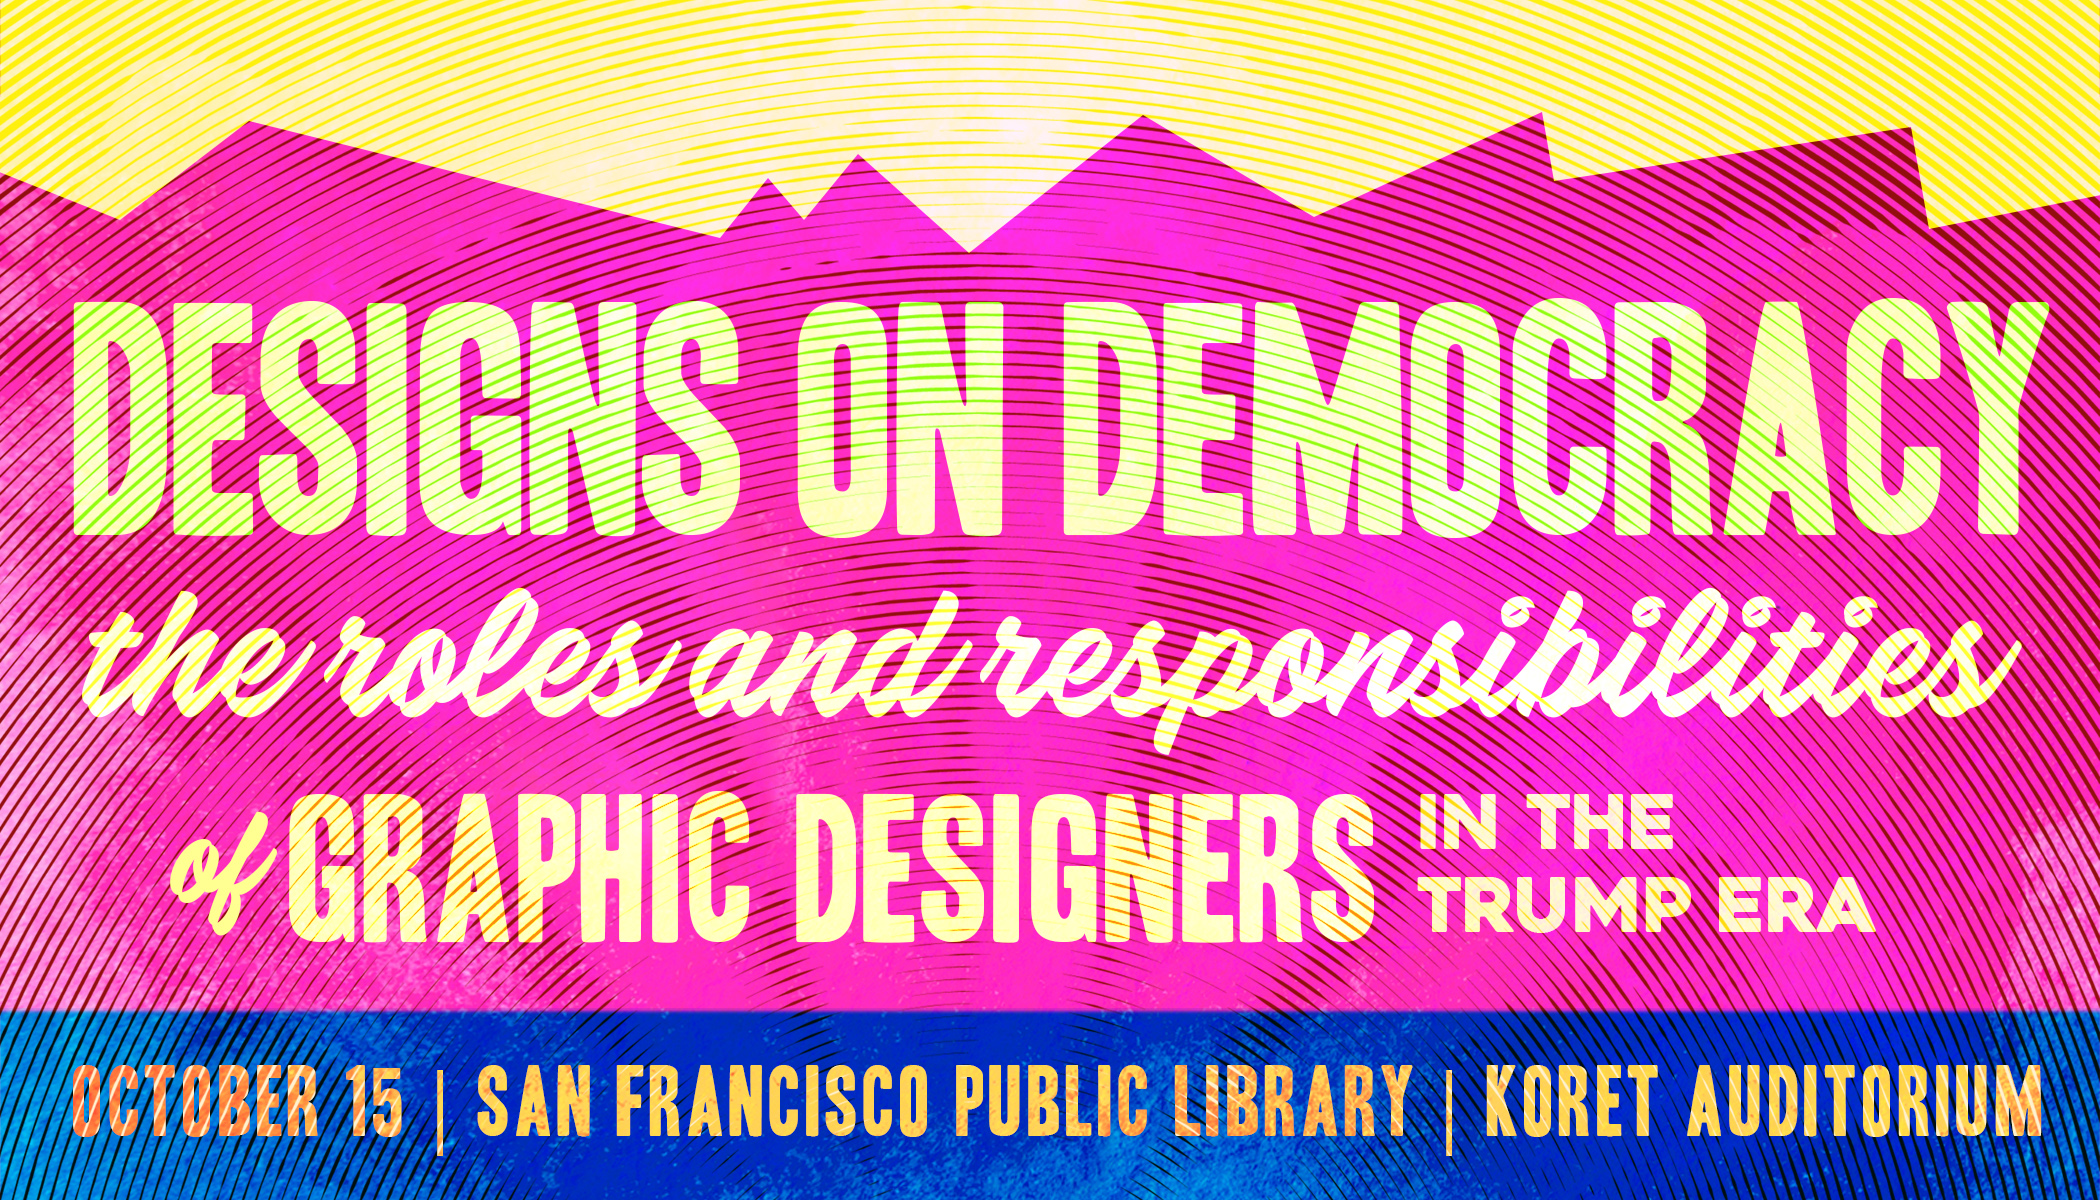 Designs on Democracy: The Roles and Responsibilities of Graphic Designers in the Trump Era